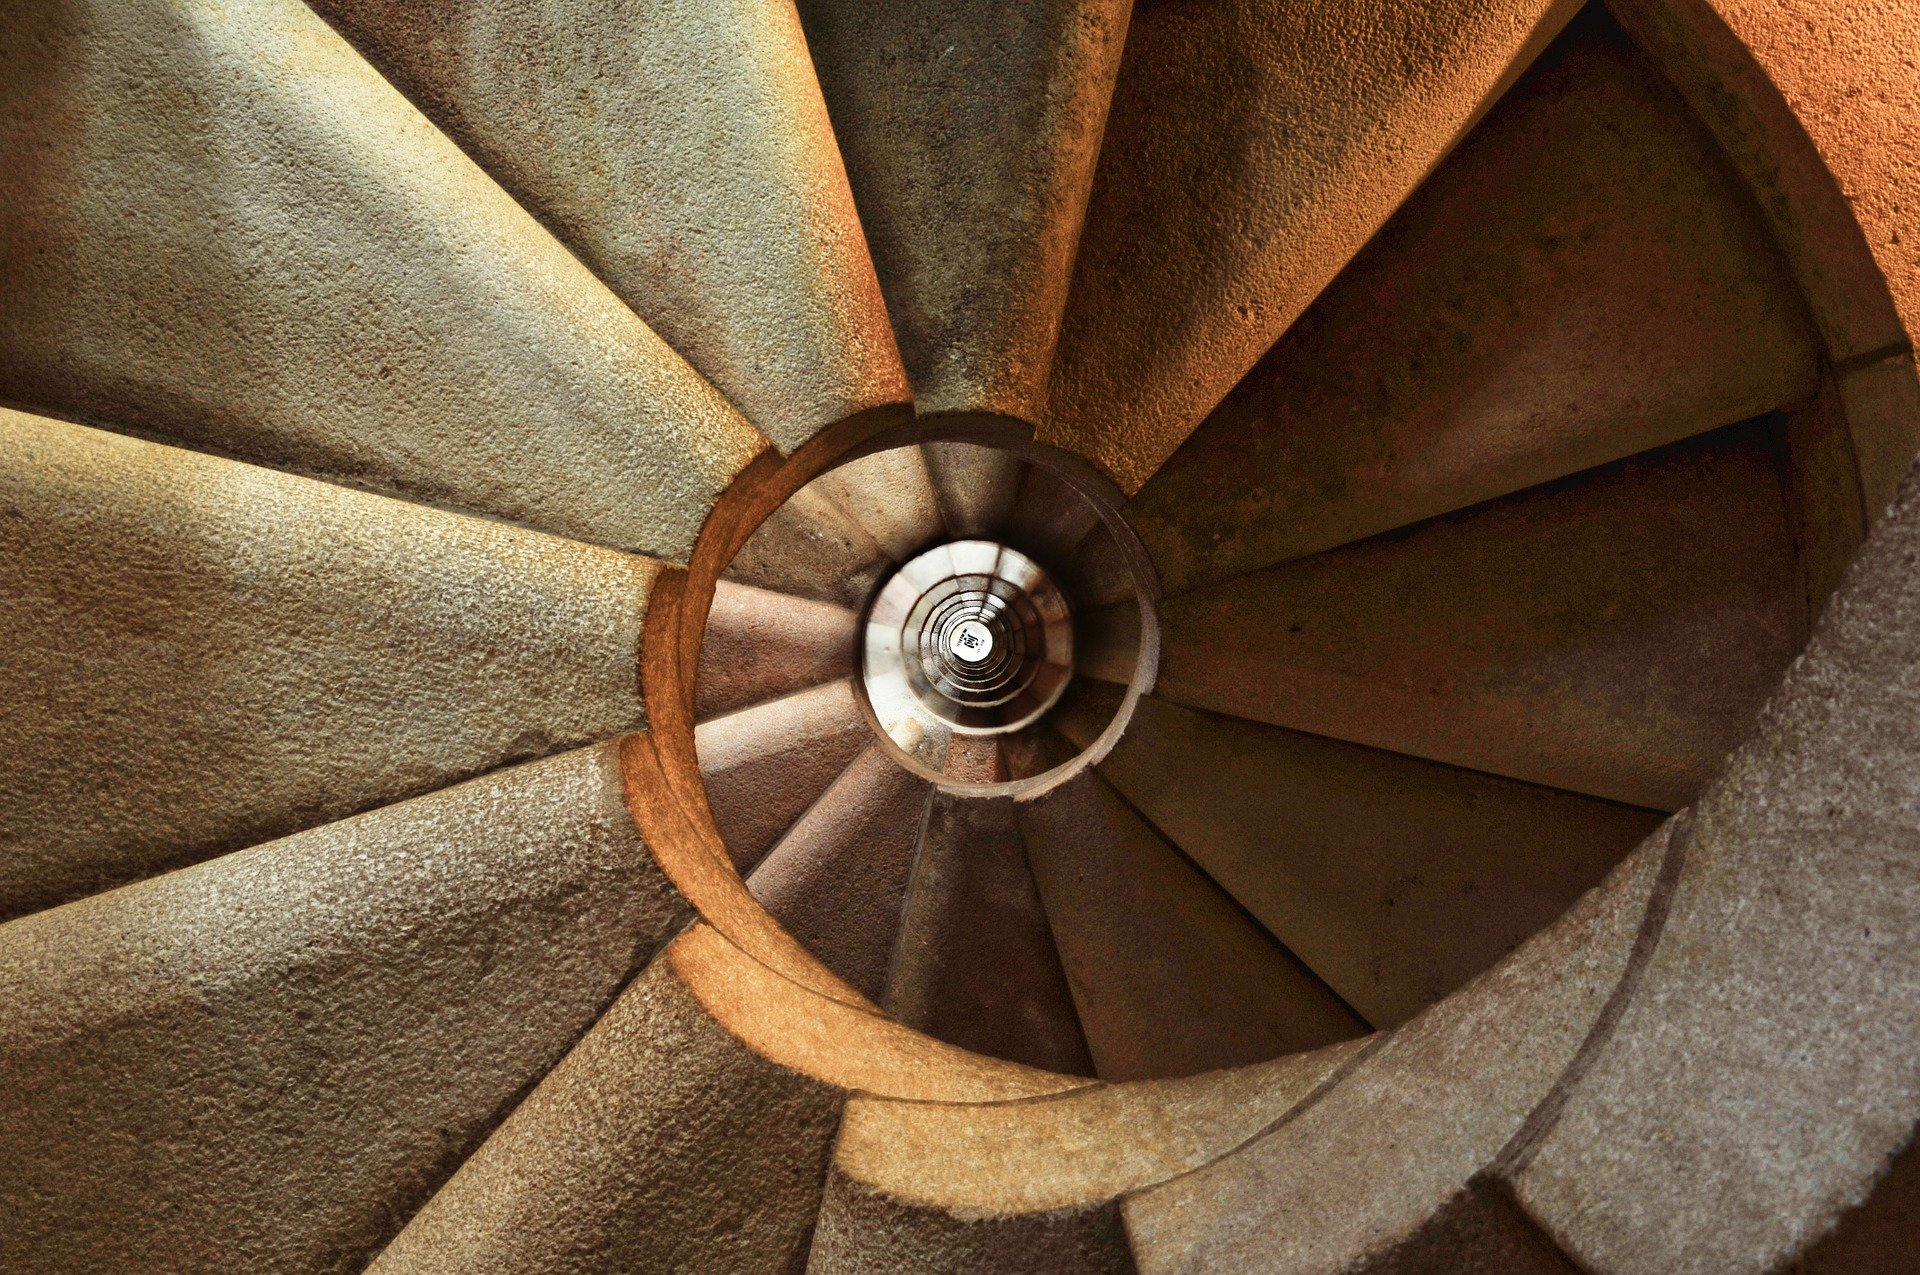 Spiral staircase showing steps to learn French